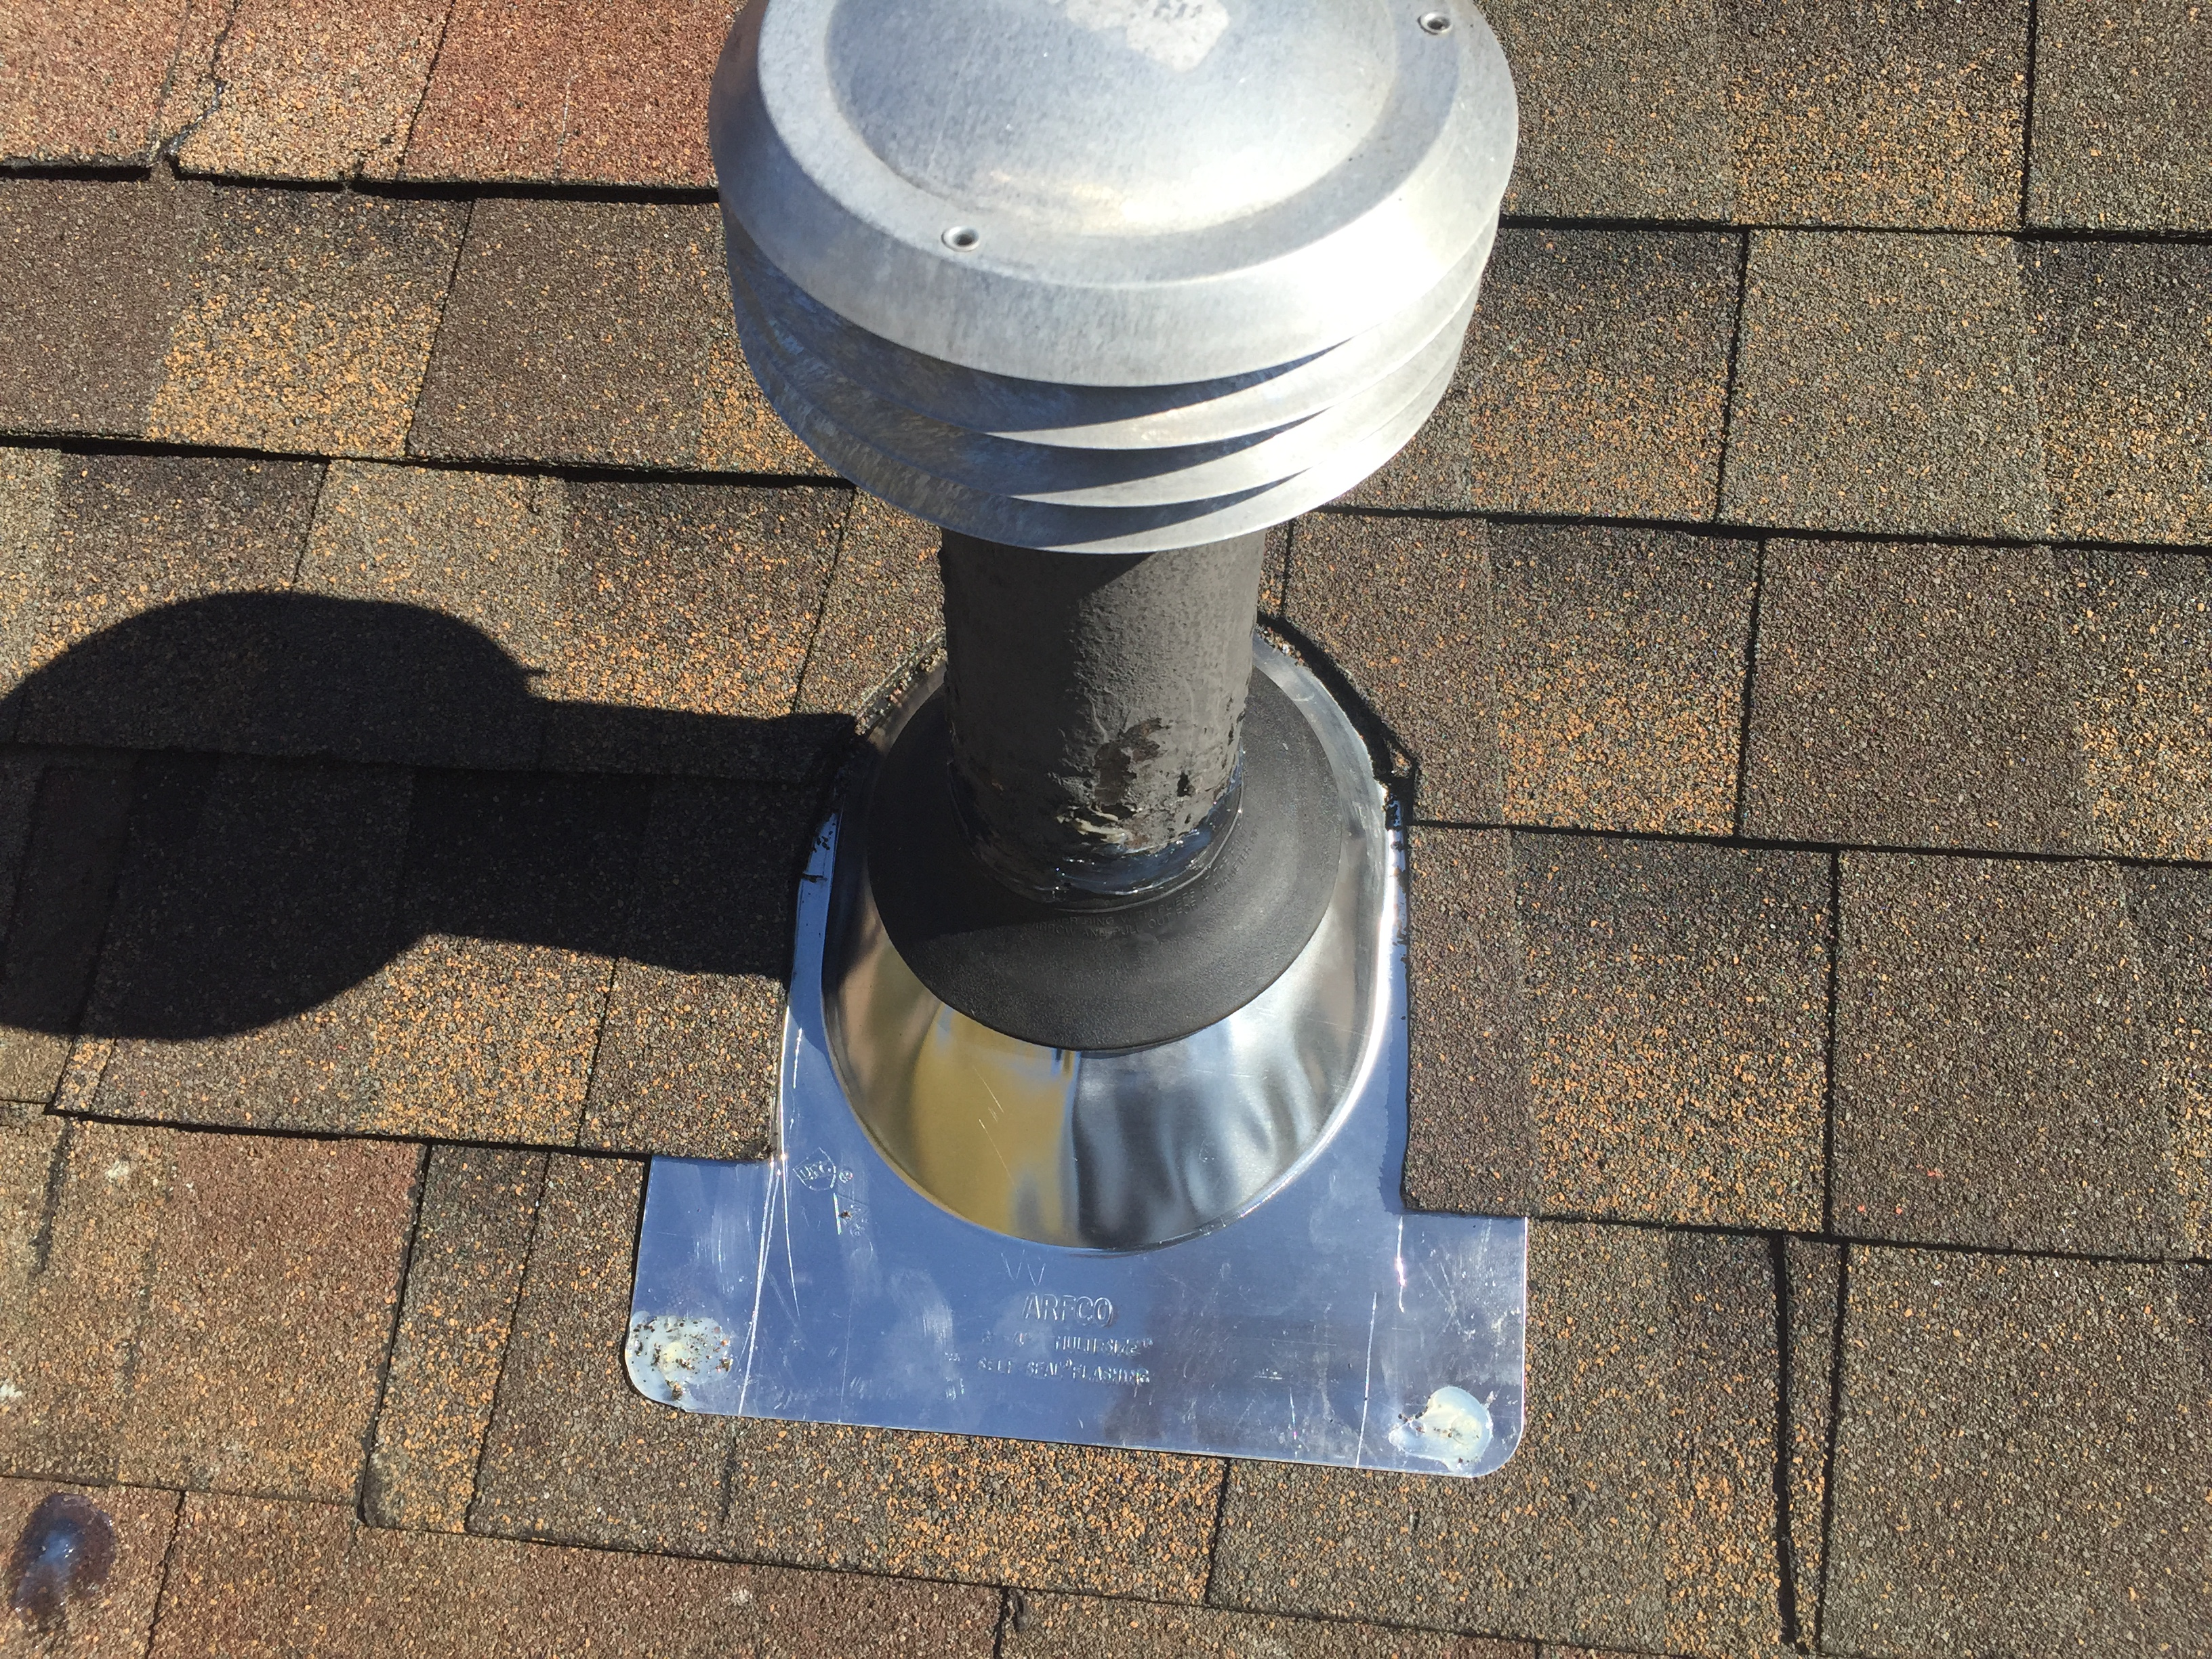 New Vent Pipe Boot Jm Roofing Systems Llc